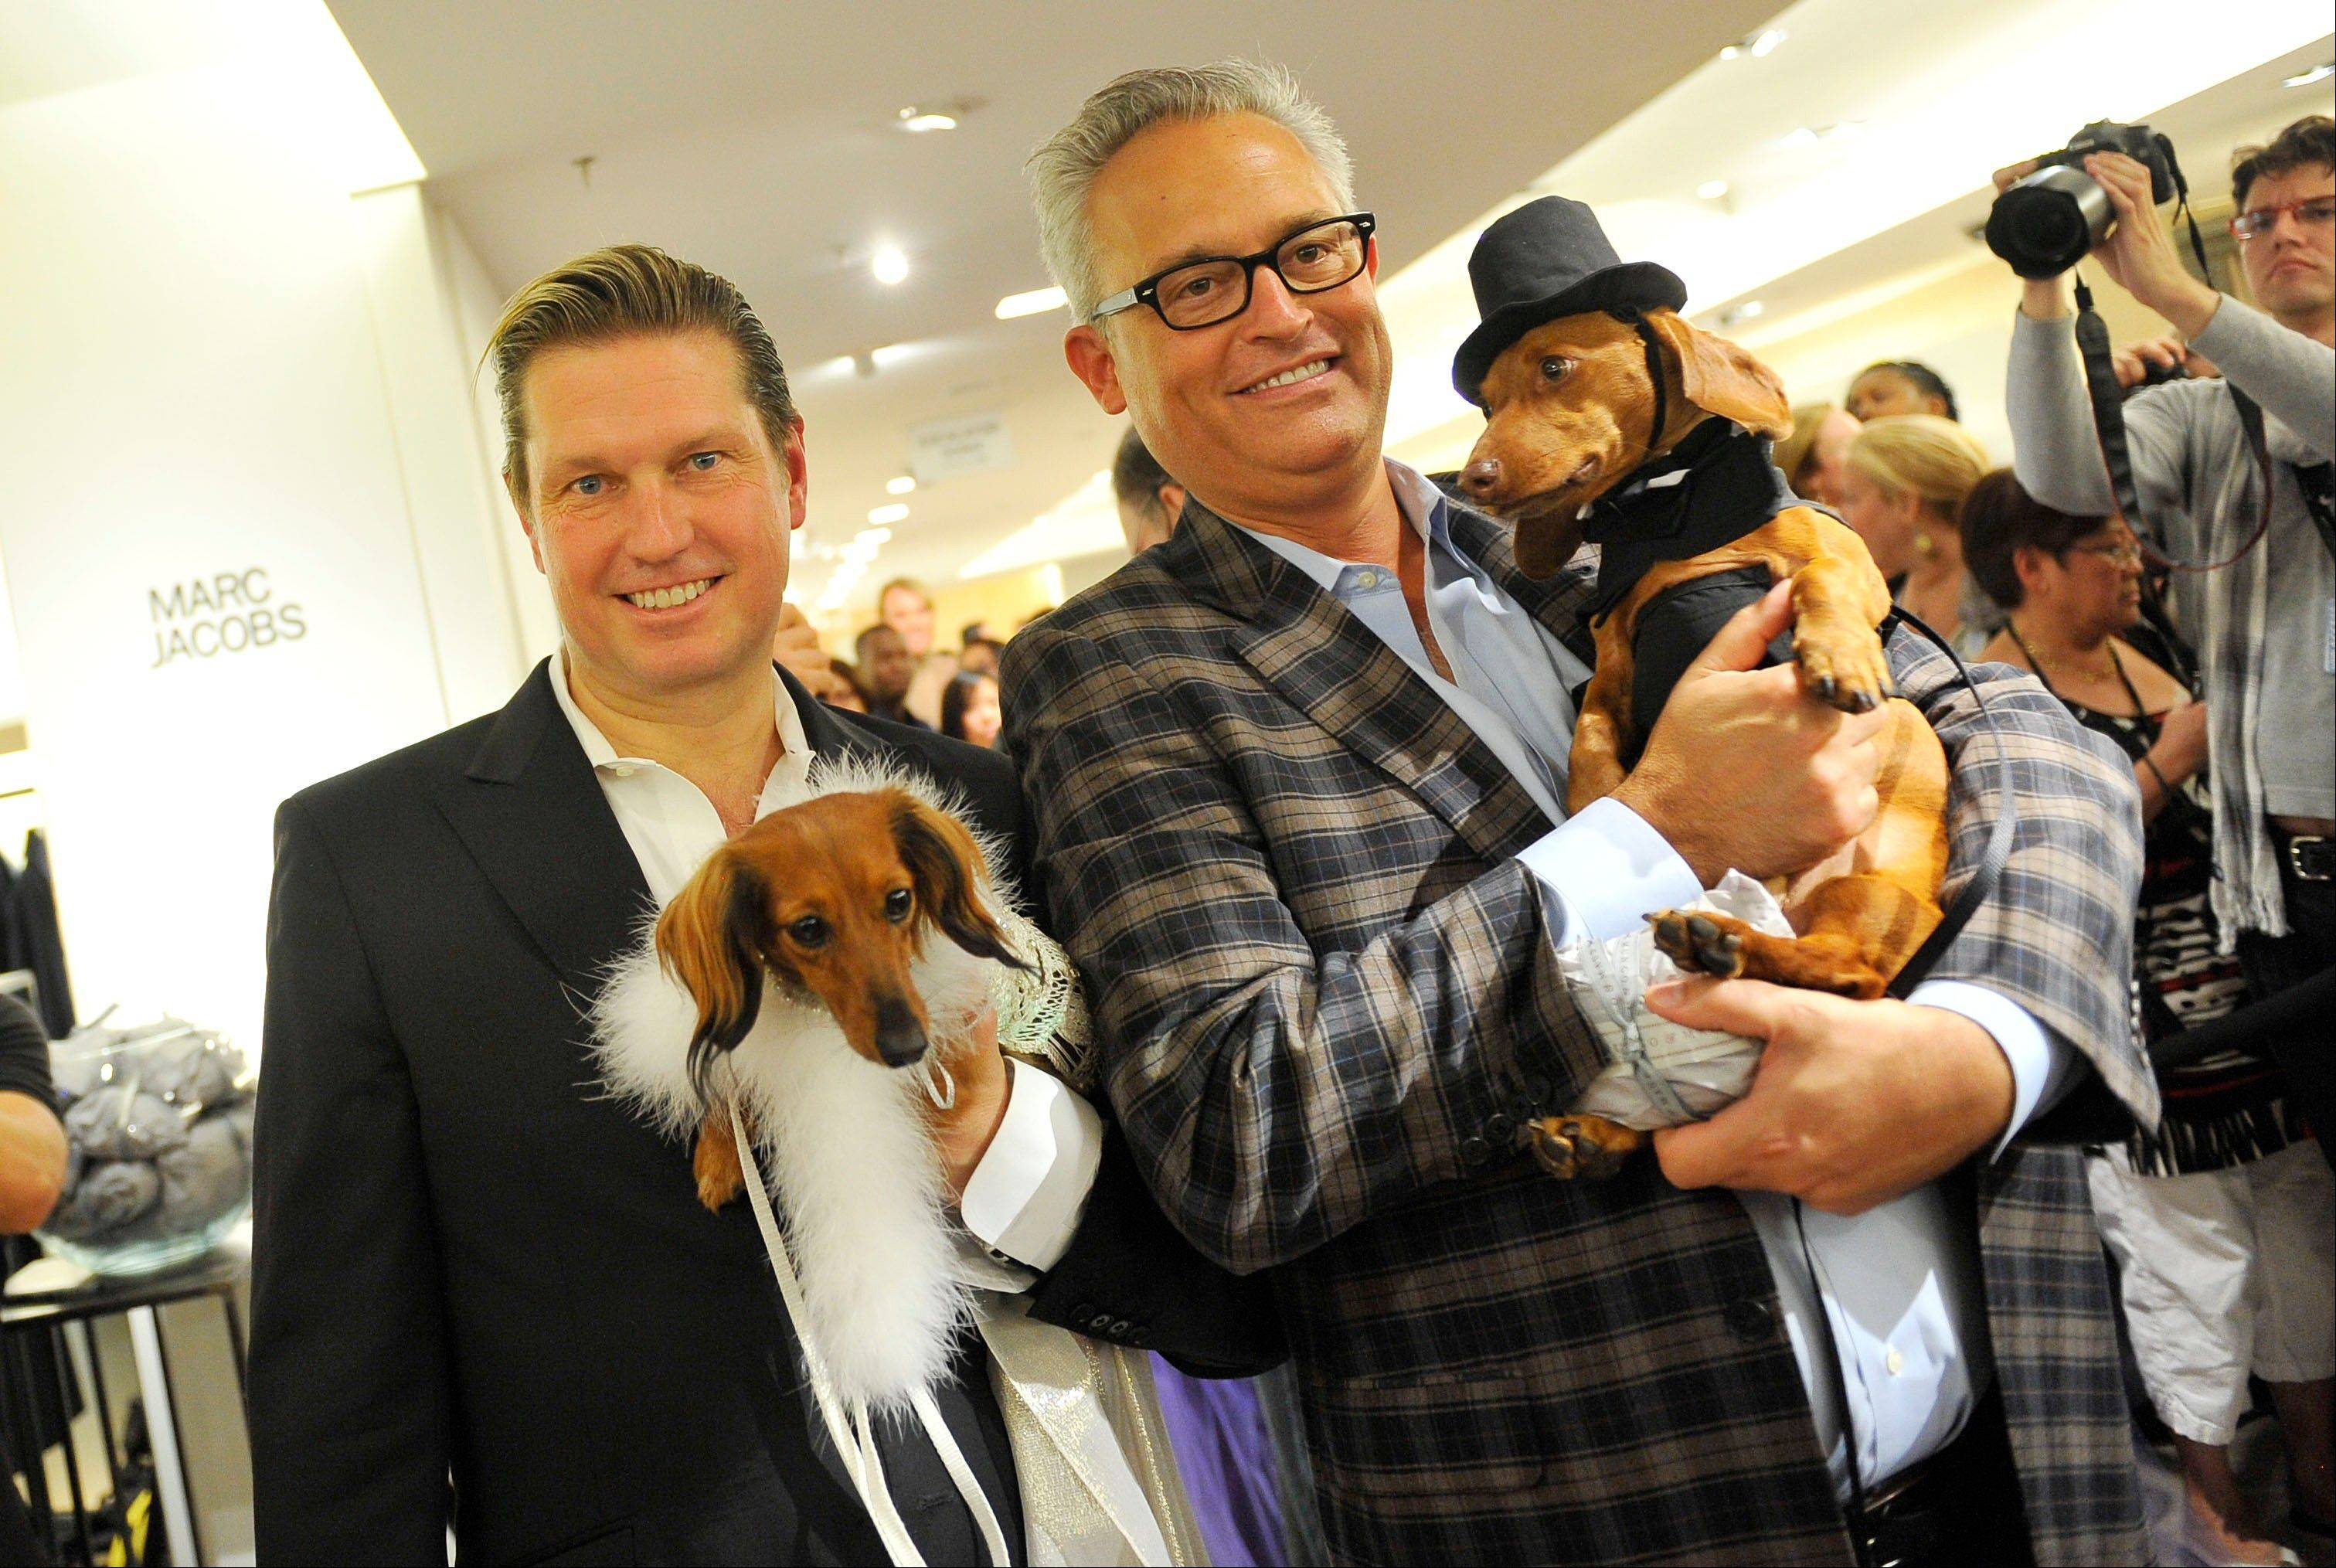 Designers Mark Badgley, left, and James Mischka hold their dogs Rommel and Whiskey during a doggie fashion show at Bergdorf Goodman during Fashion�s Night Out during Fashion Week in New York. the shopping initiative driven by Vogue Editor-In-Chief Anna Wintour, returns as a bigger event next month, extending to 250 U.S. cities, but there seems to be a sharper focus on industry stars — including designers, red carpet experts and makeup artists — instead of the Hollywood celebrities who grabbed headlines the past two years.